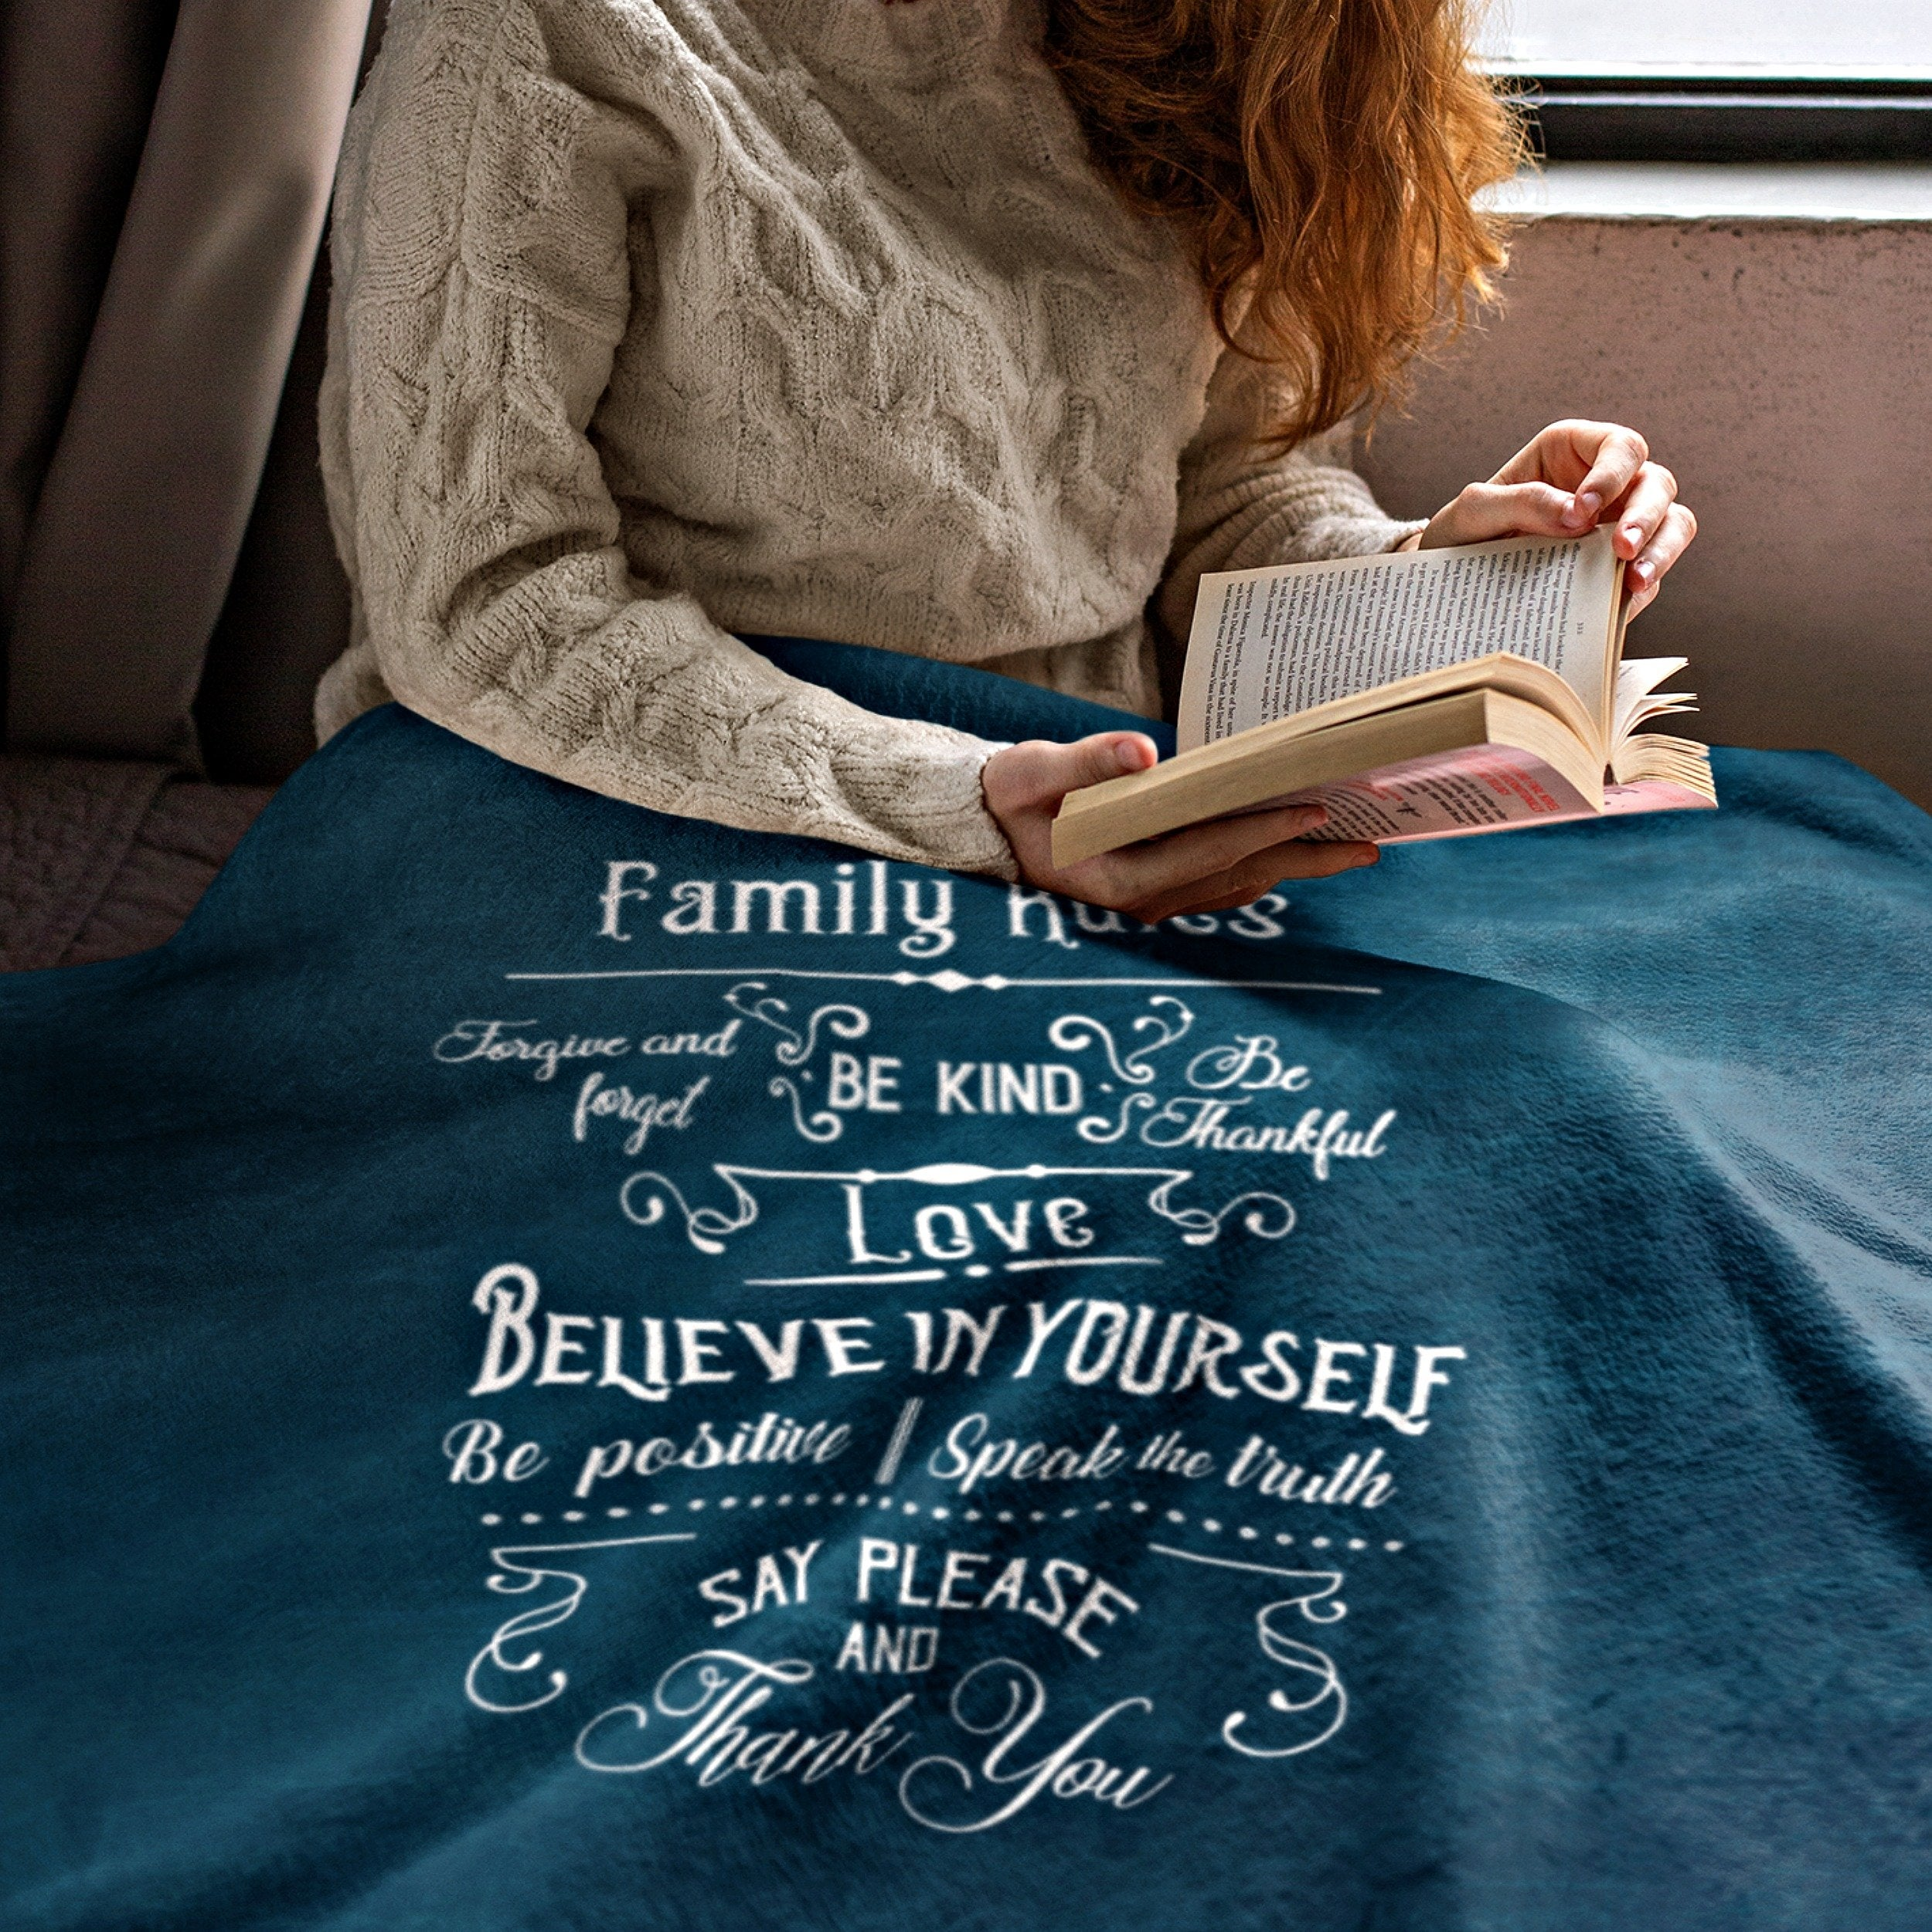 Family Rules Rustic Blue Throw Blanket